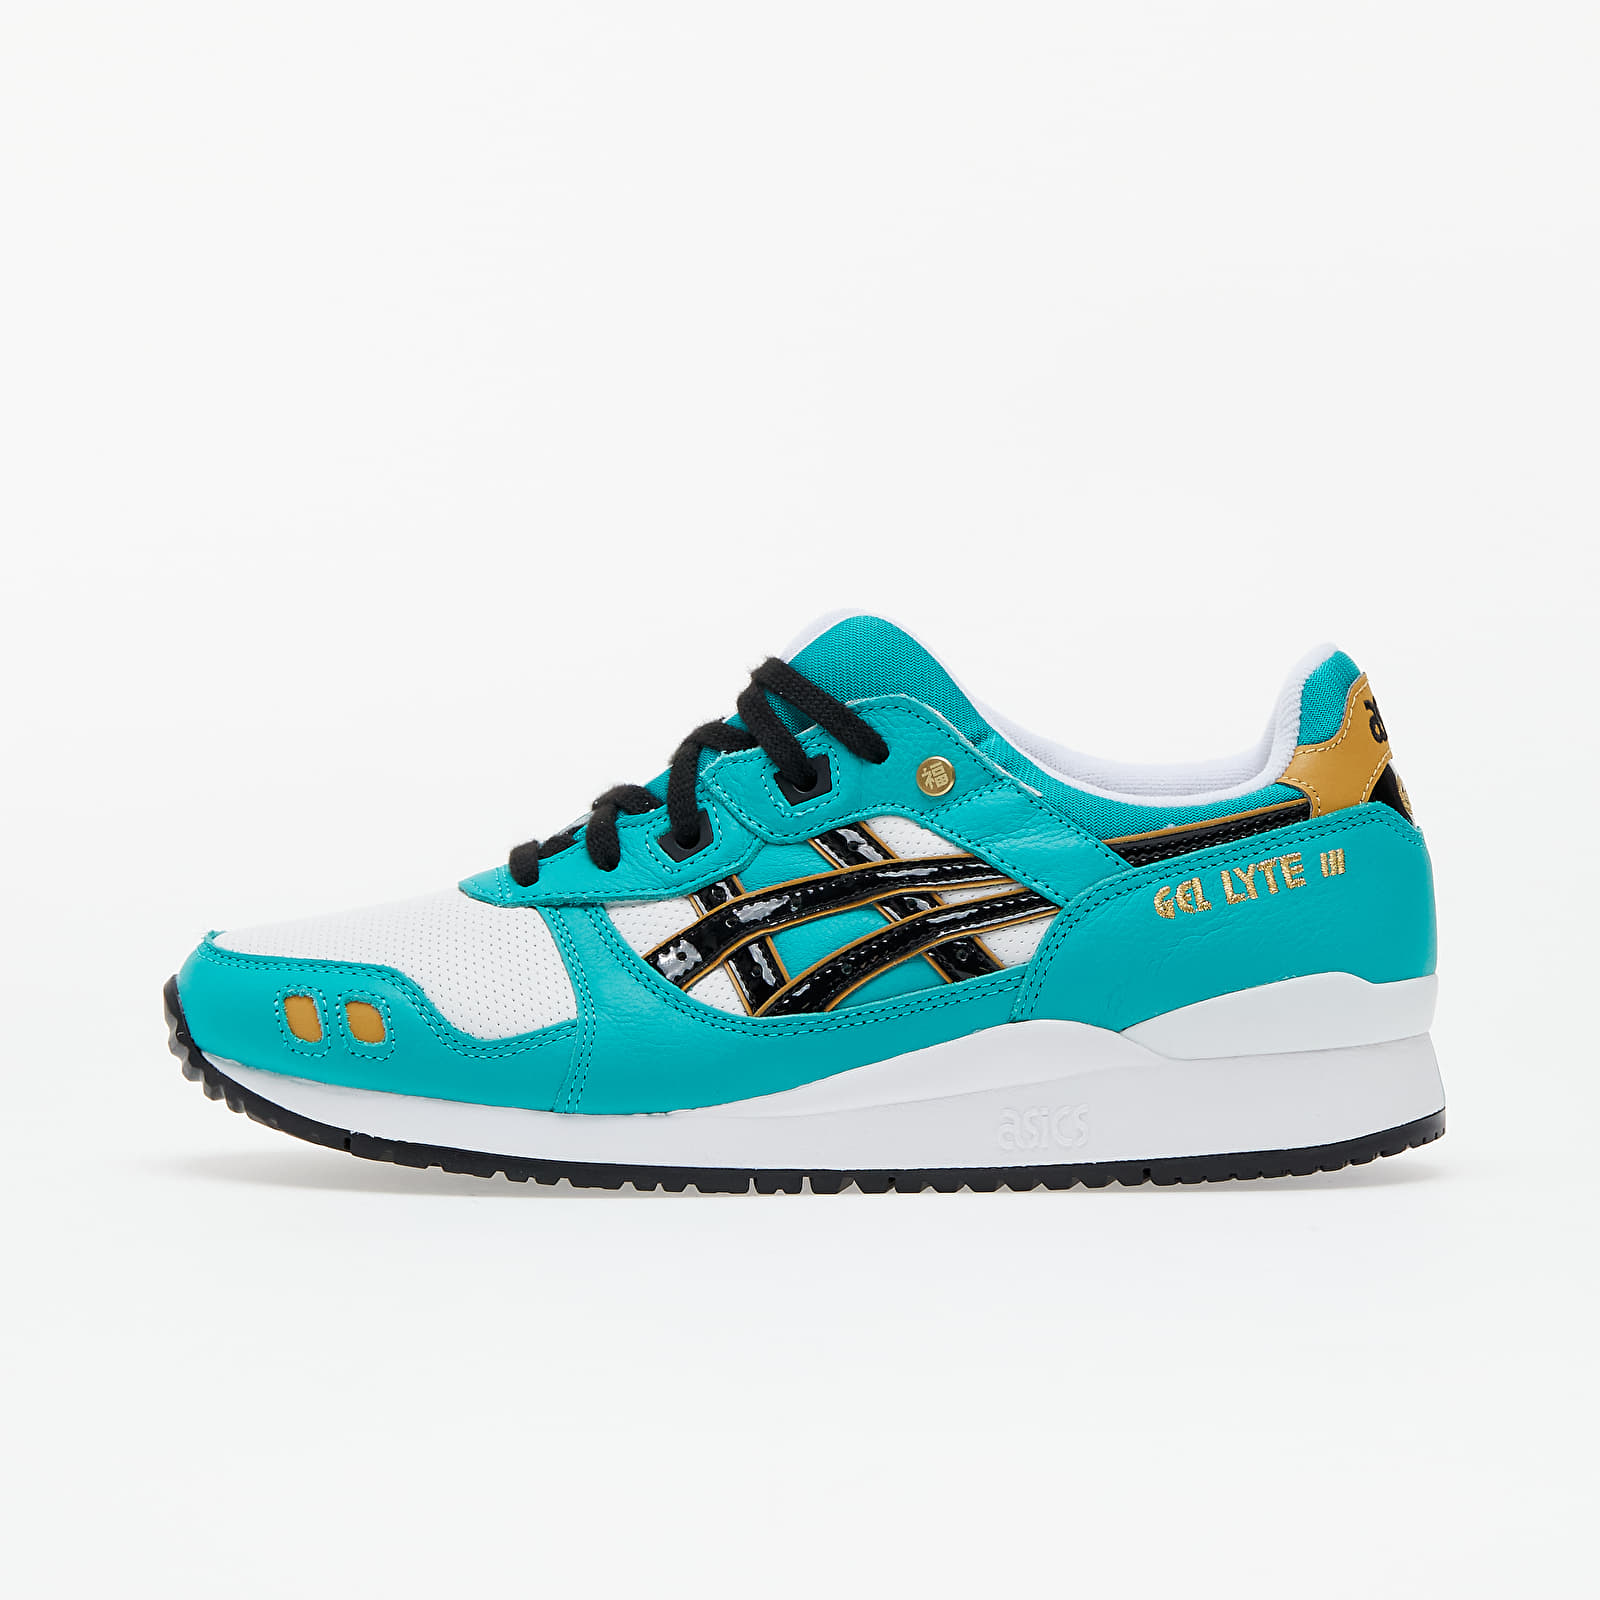 Asics Gel-Lyte III OG Baltic Jewel/ Black EUR 42